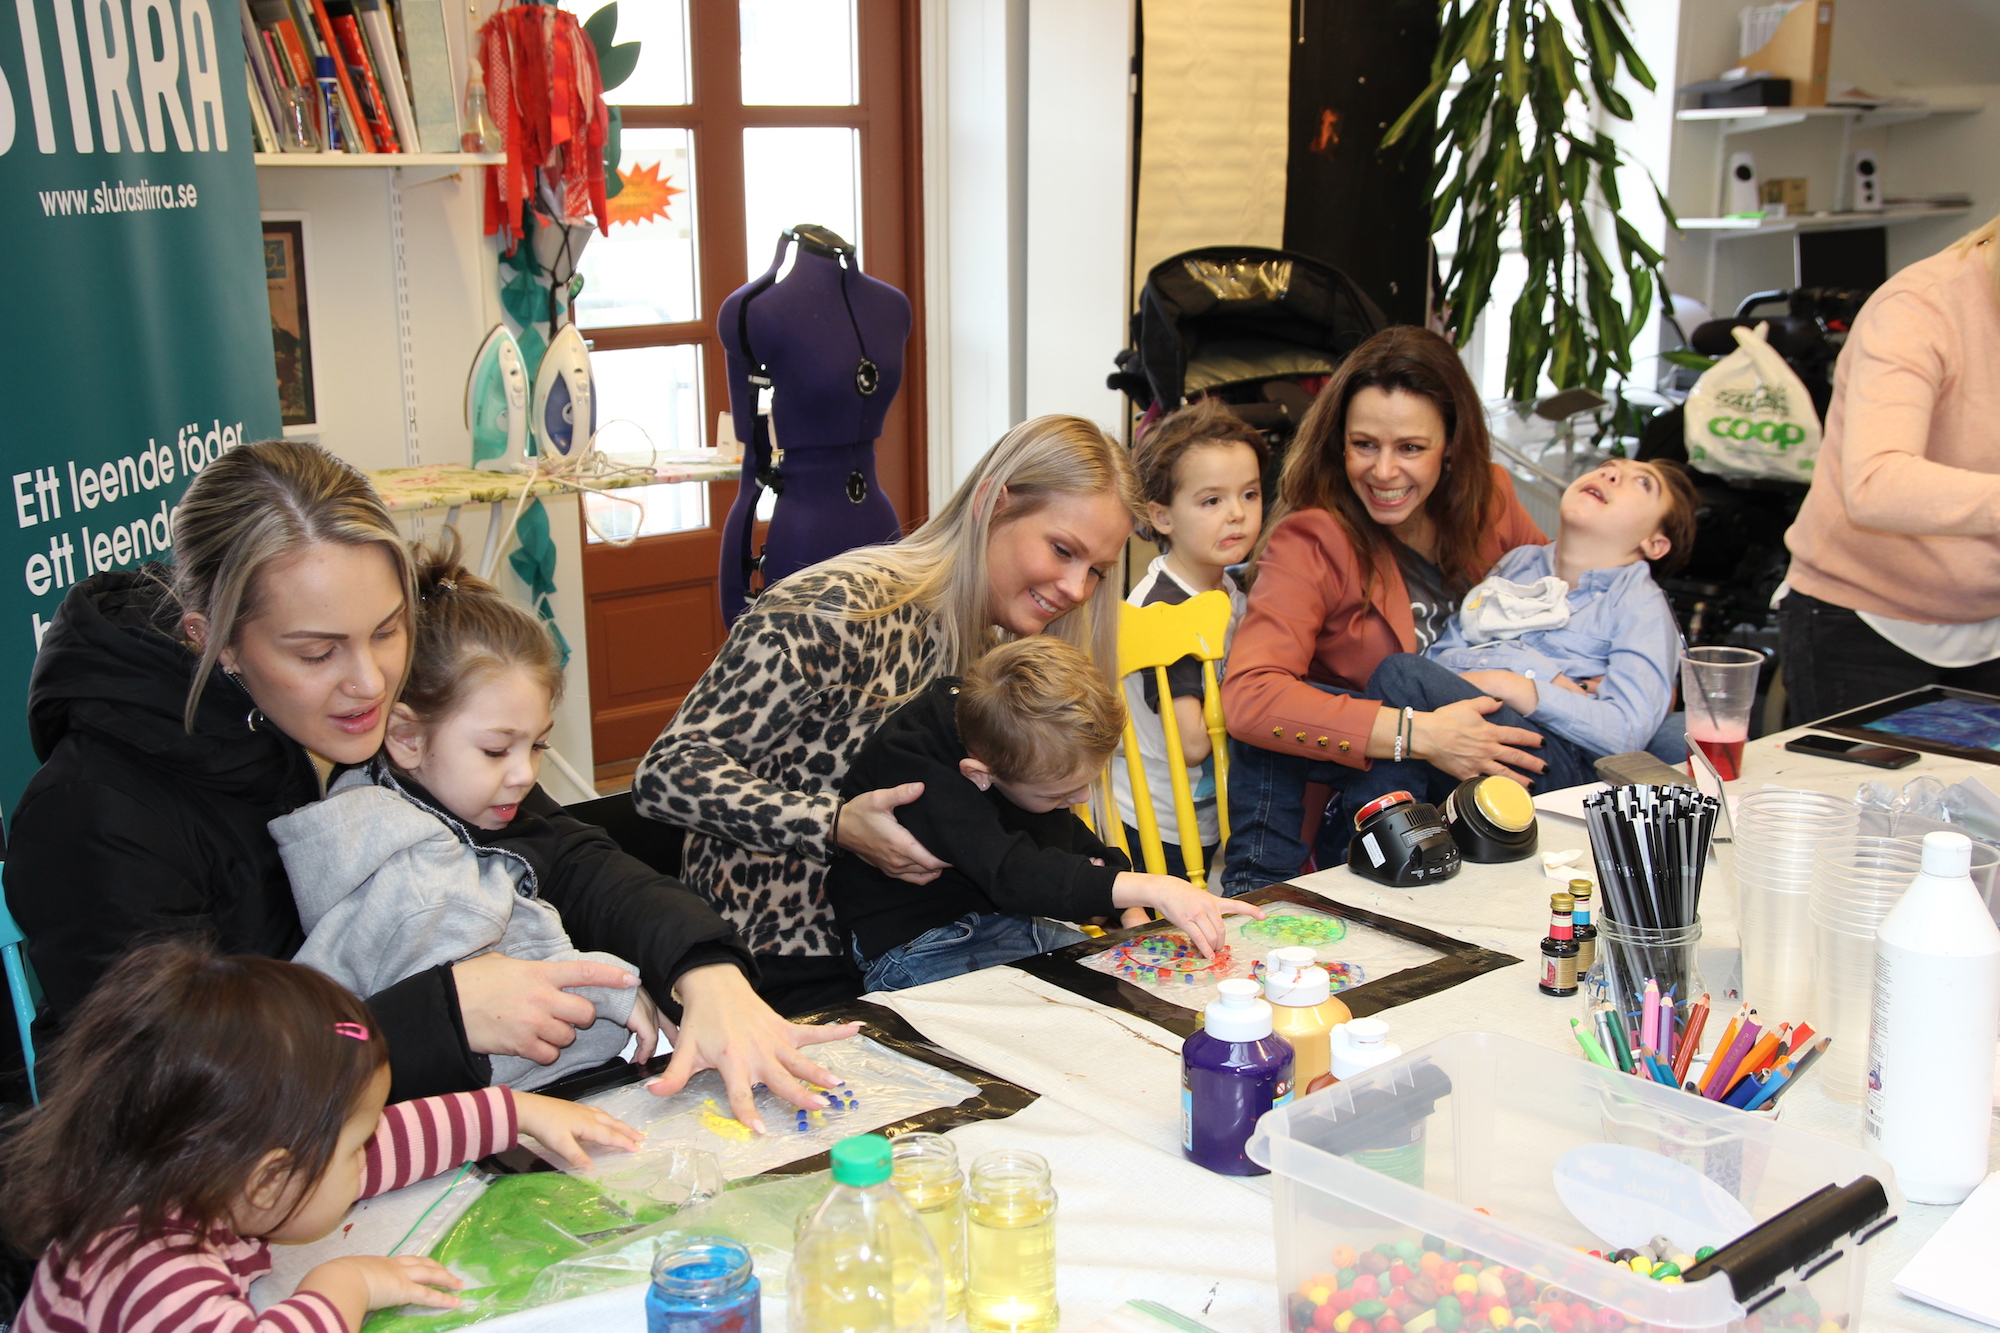 parnets and children together at the party